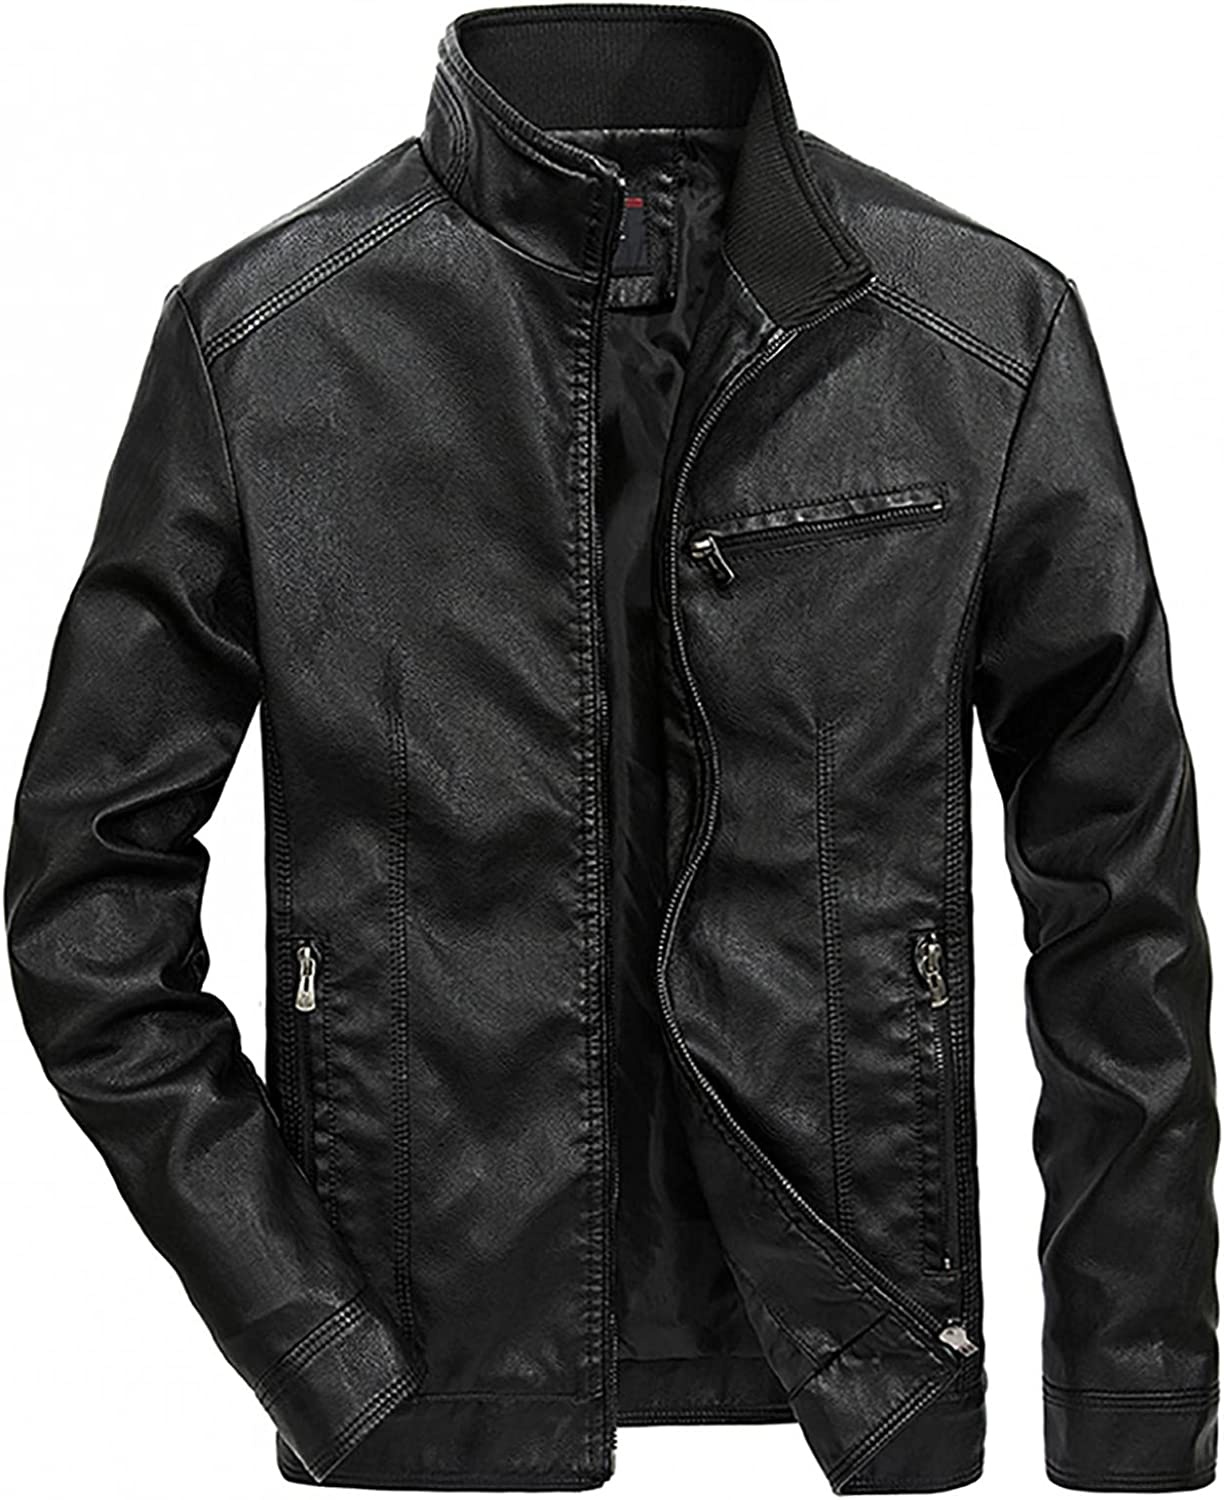 Easy-to-use Men's Cool Stylish Jacket Coat Casual Fit Stand Zipper Slim Challenge the lowest price of Japan Coll